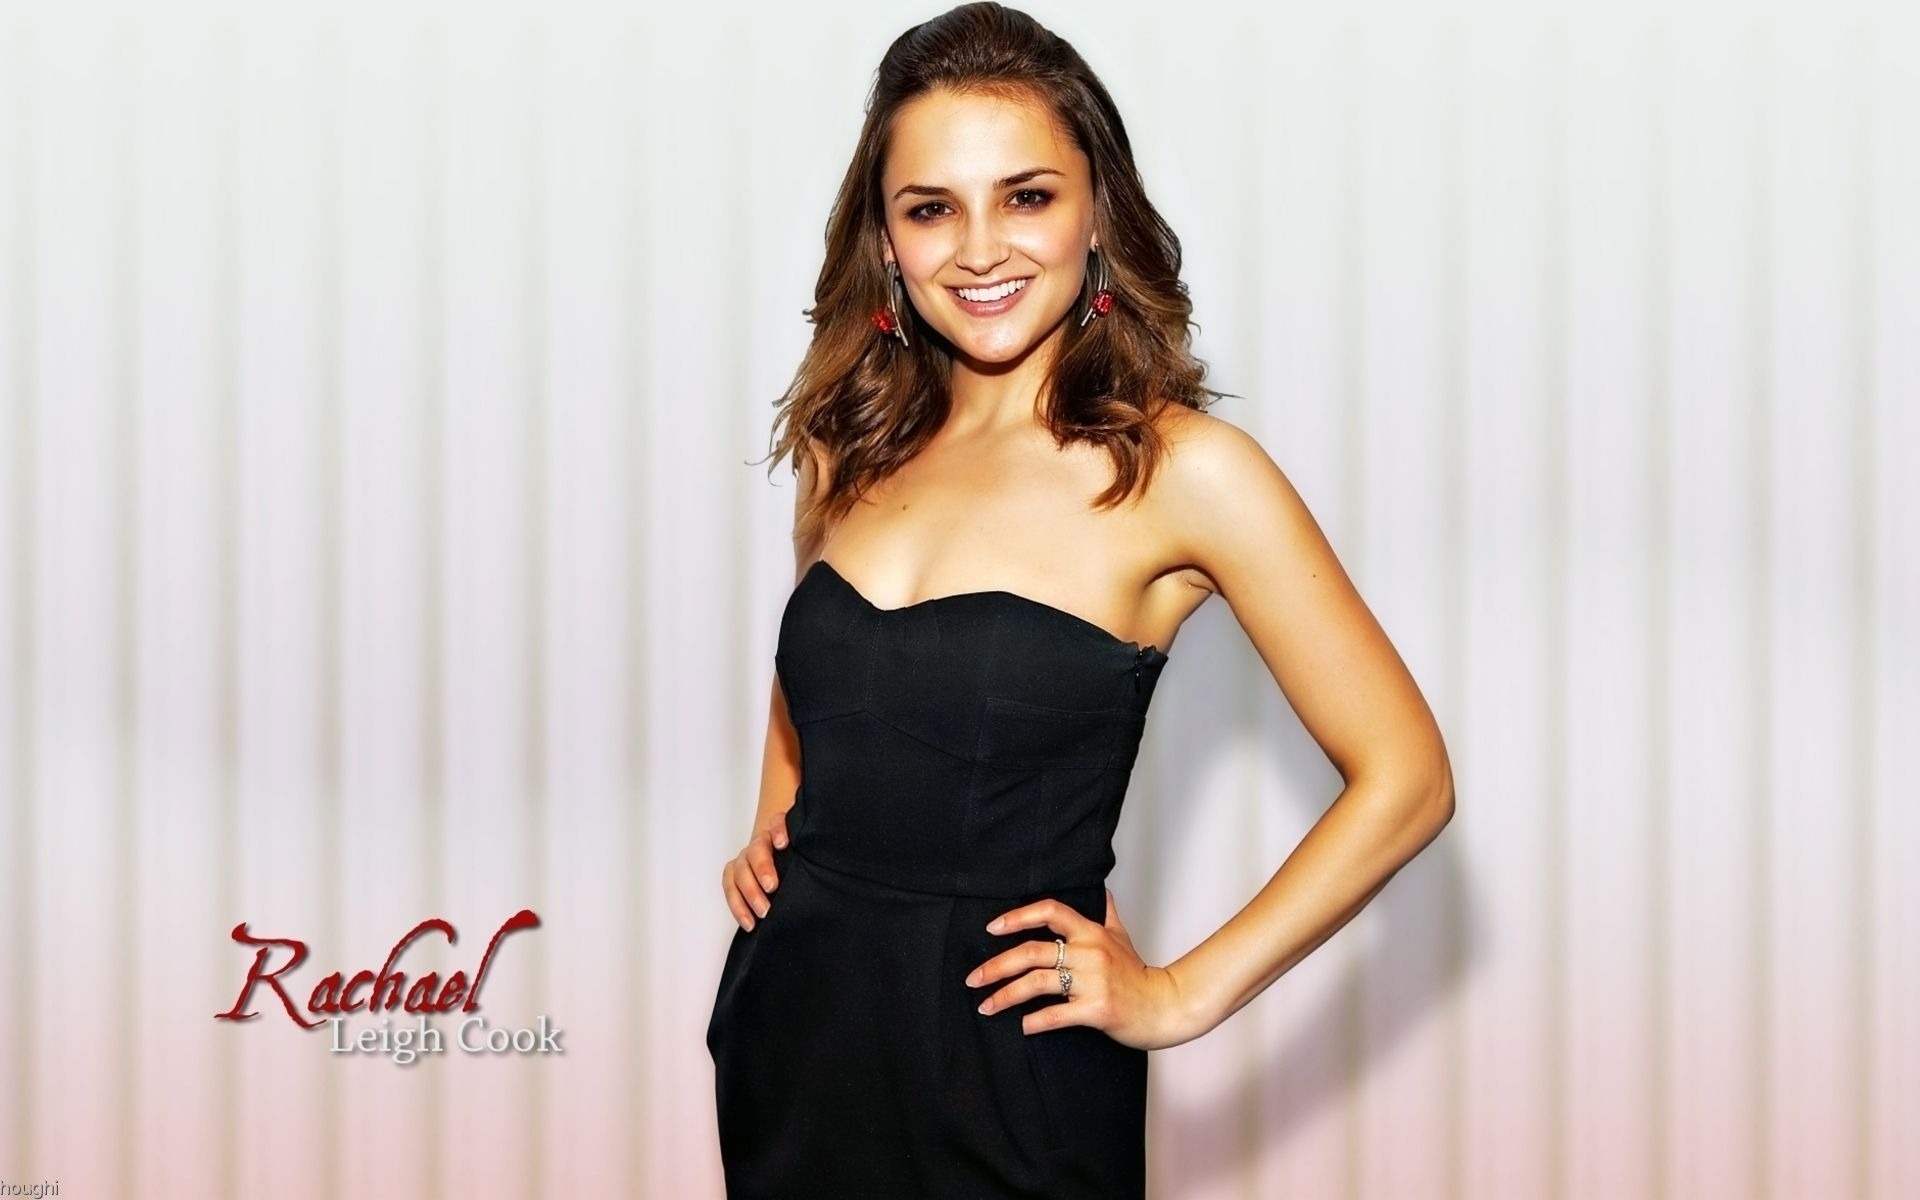 Rachael Leigh Cook #015 - 1920x1200 Wallpapers Pictures Photos Images